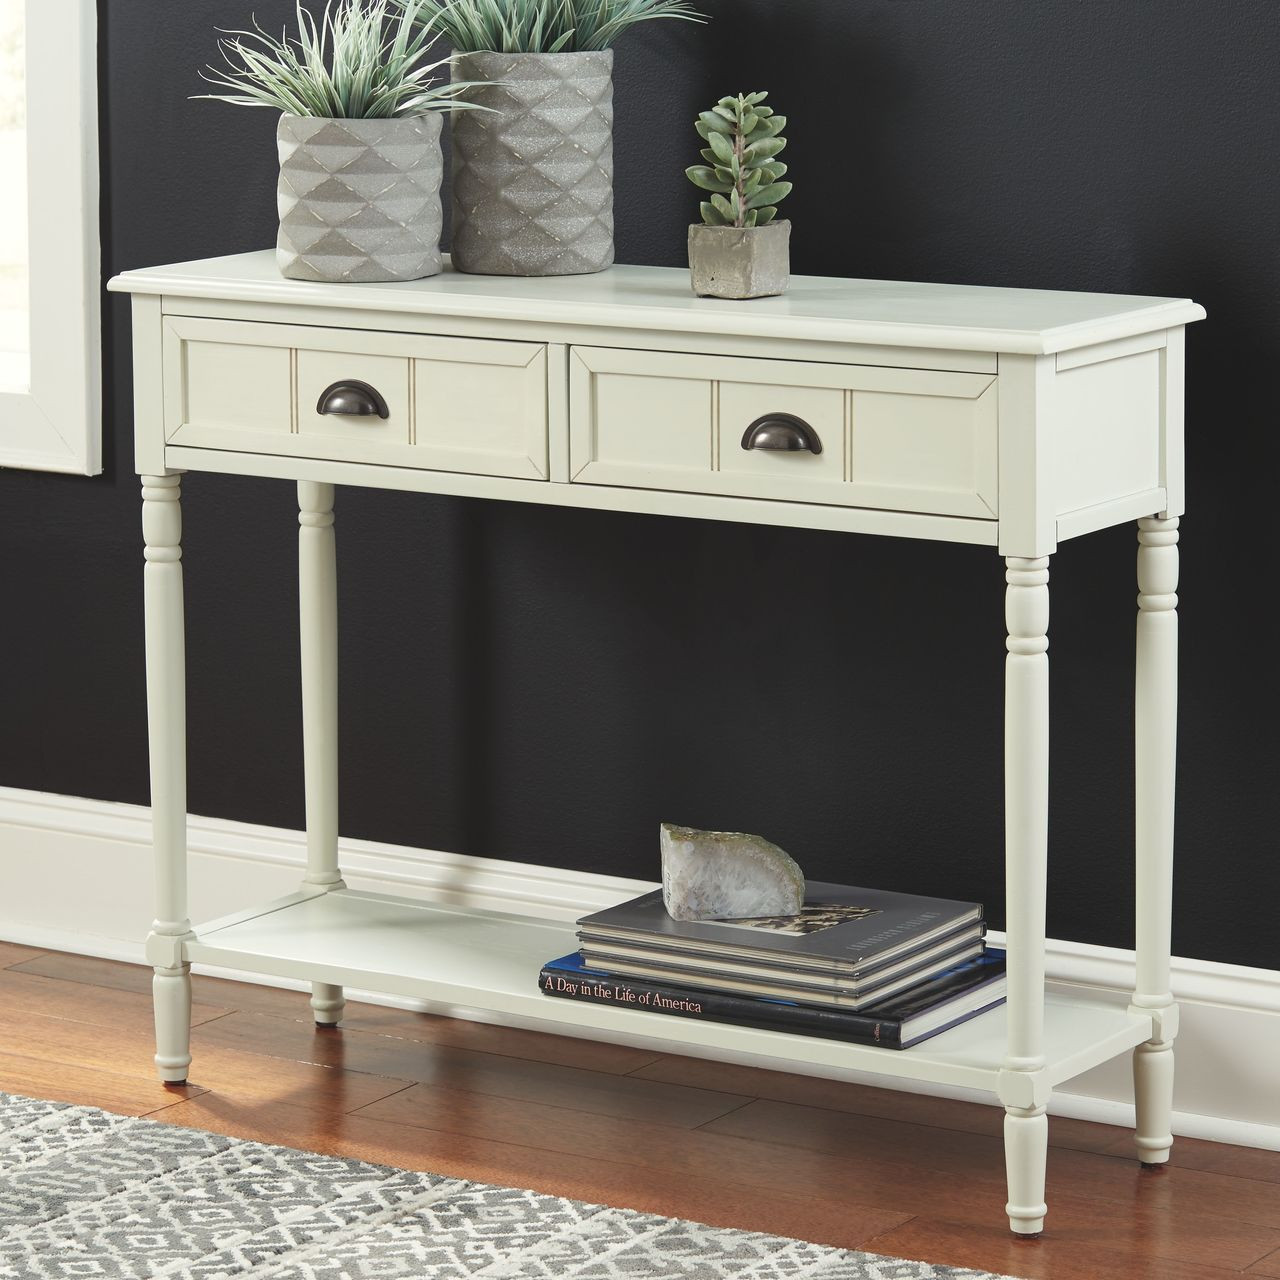 The Goverton White Console Sofa Table Available At Jaxco Furniture Serving Jacksonville Fl And Surrounding Areas